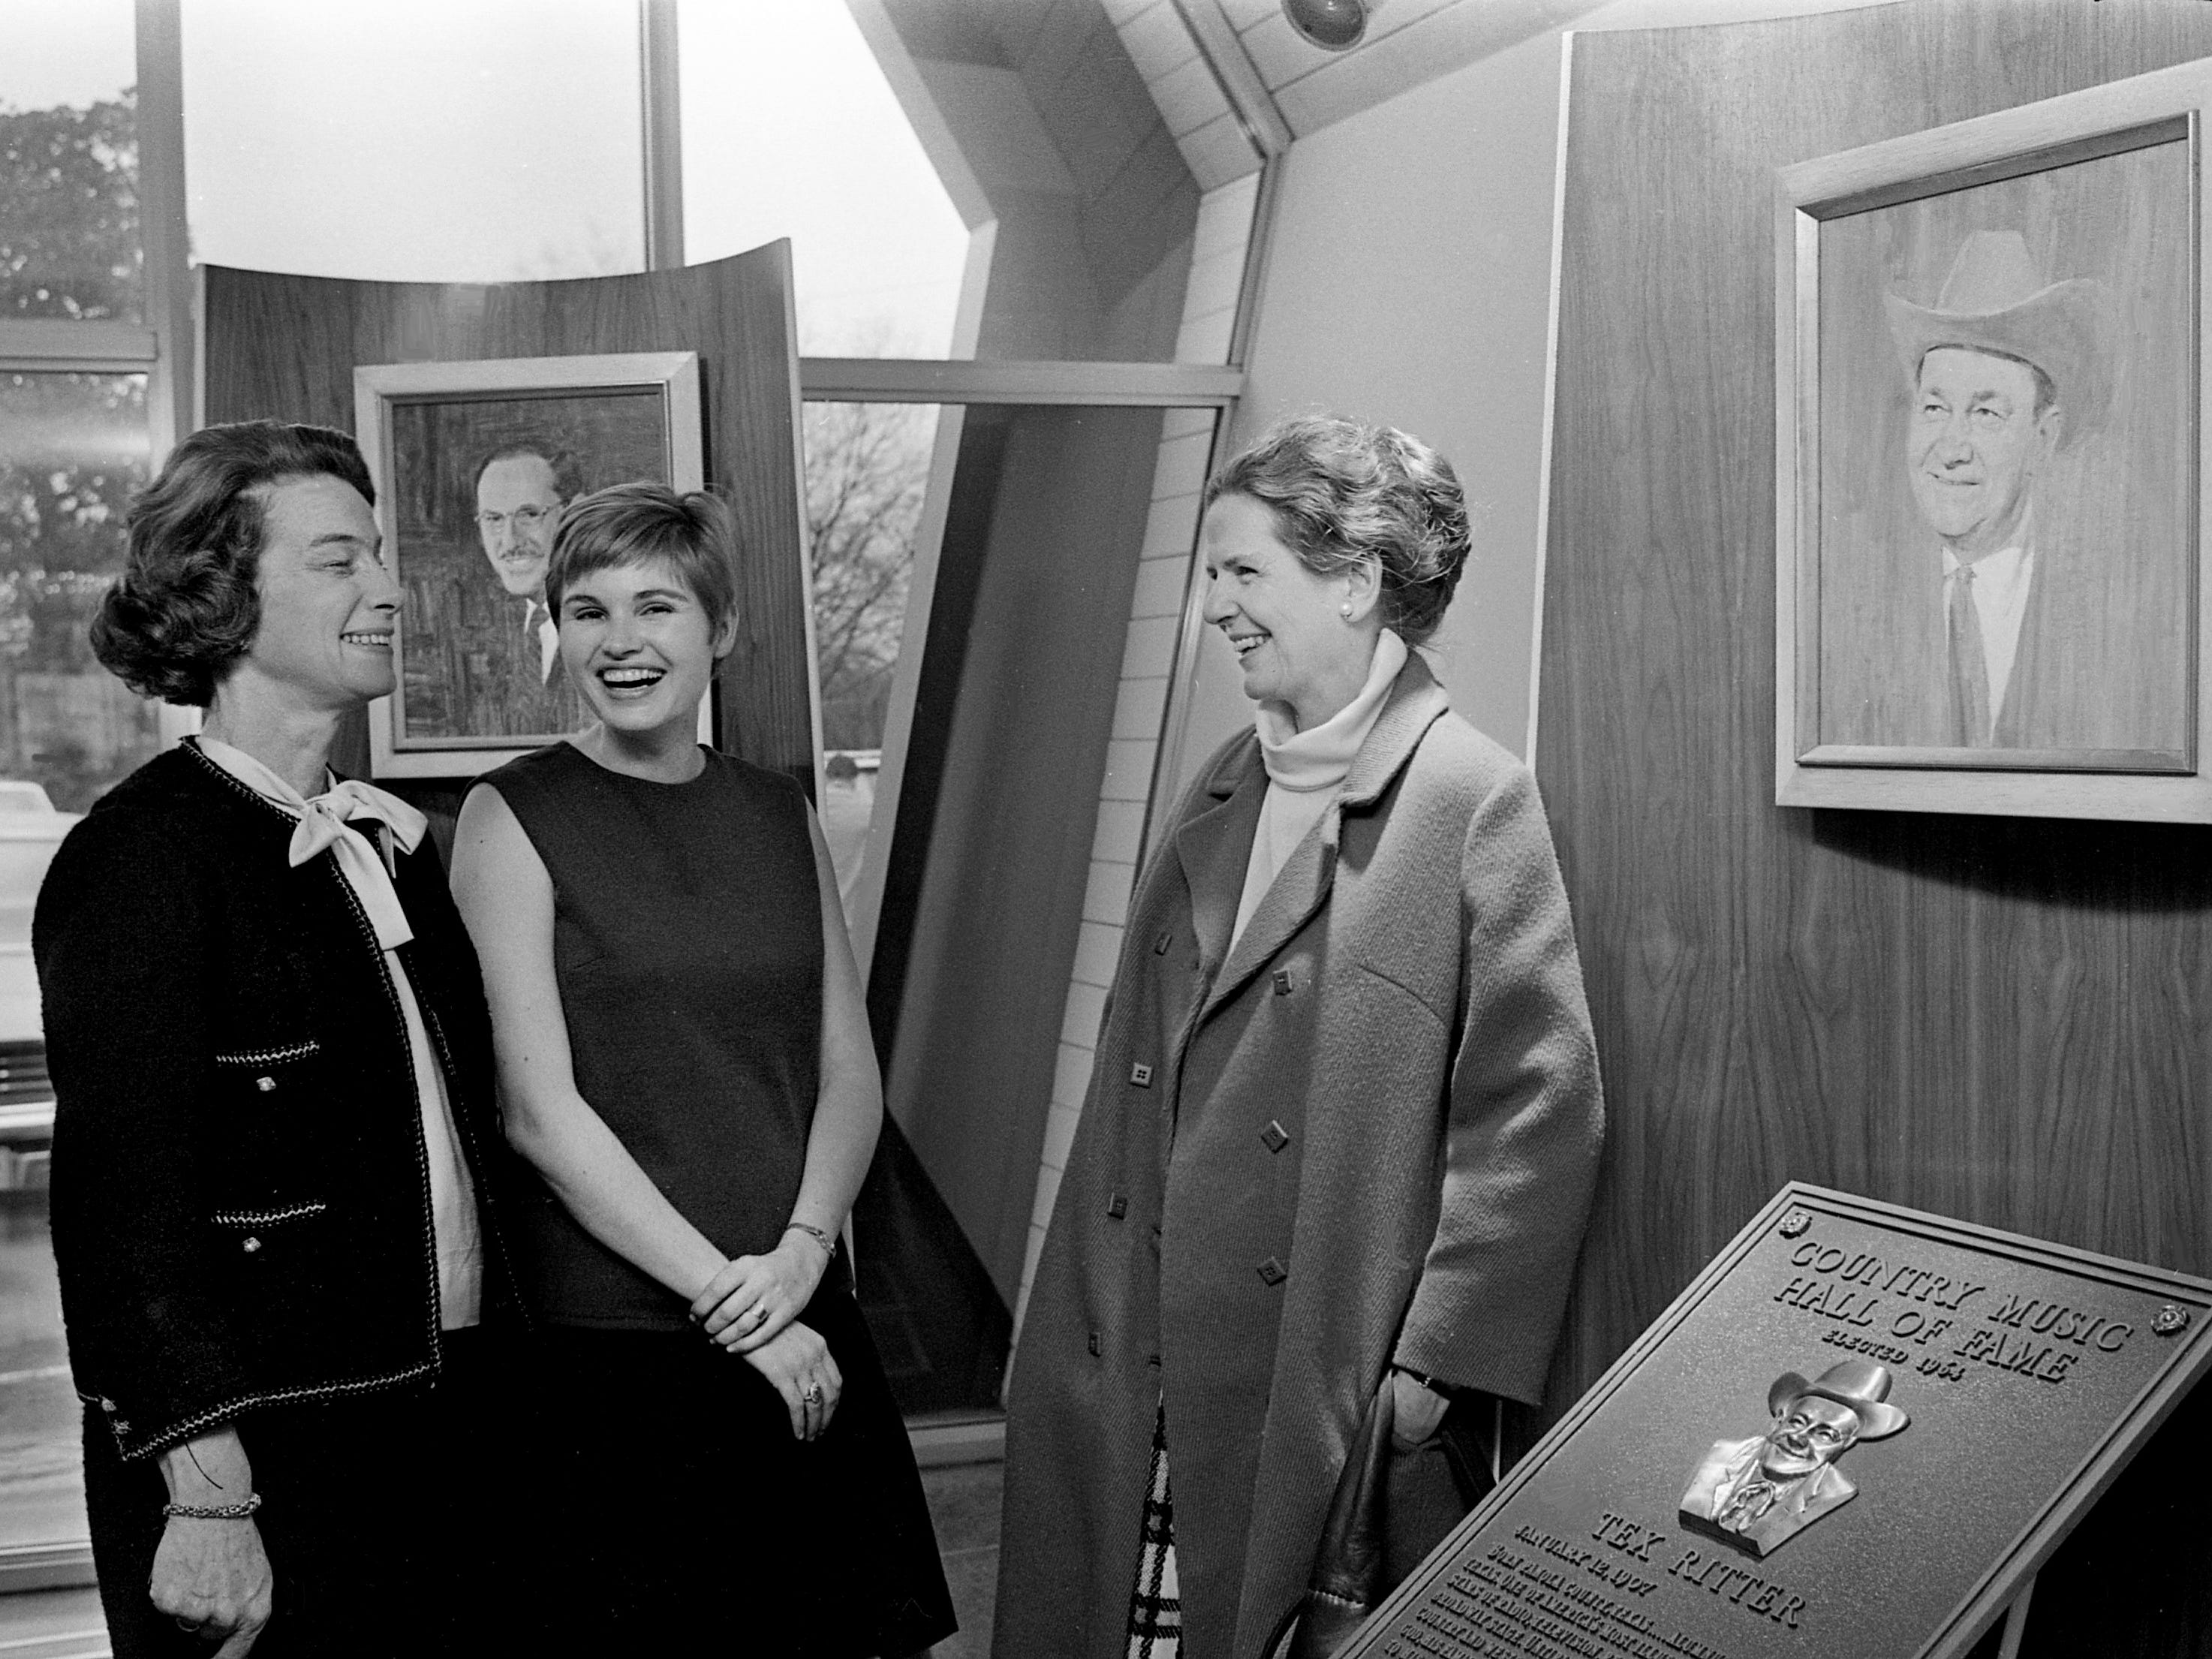 Mrs. B.B. Gullett, left, Mrs. Tom Peebles and Mrs. Charles Trabue Jr., members of the Nashville Bar Auxiliary, check out the plaque of Tex Ritter at the Country Music Hall of Fame after their luncheon at the site Jan. 30, 1969.